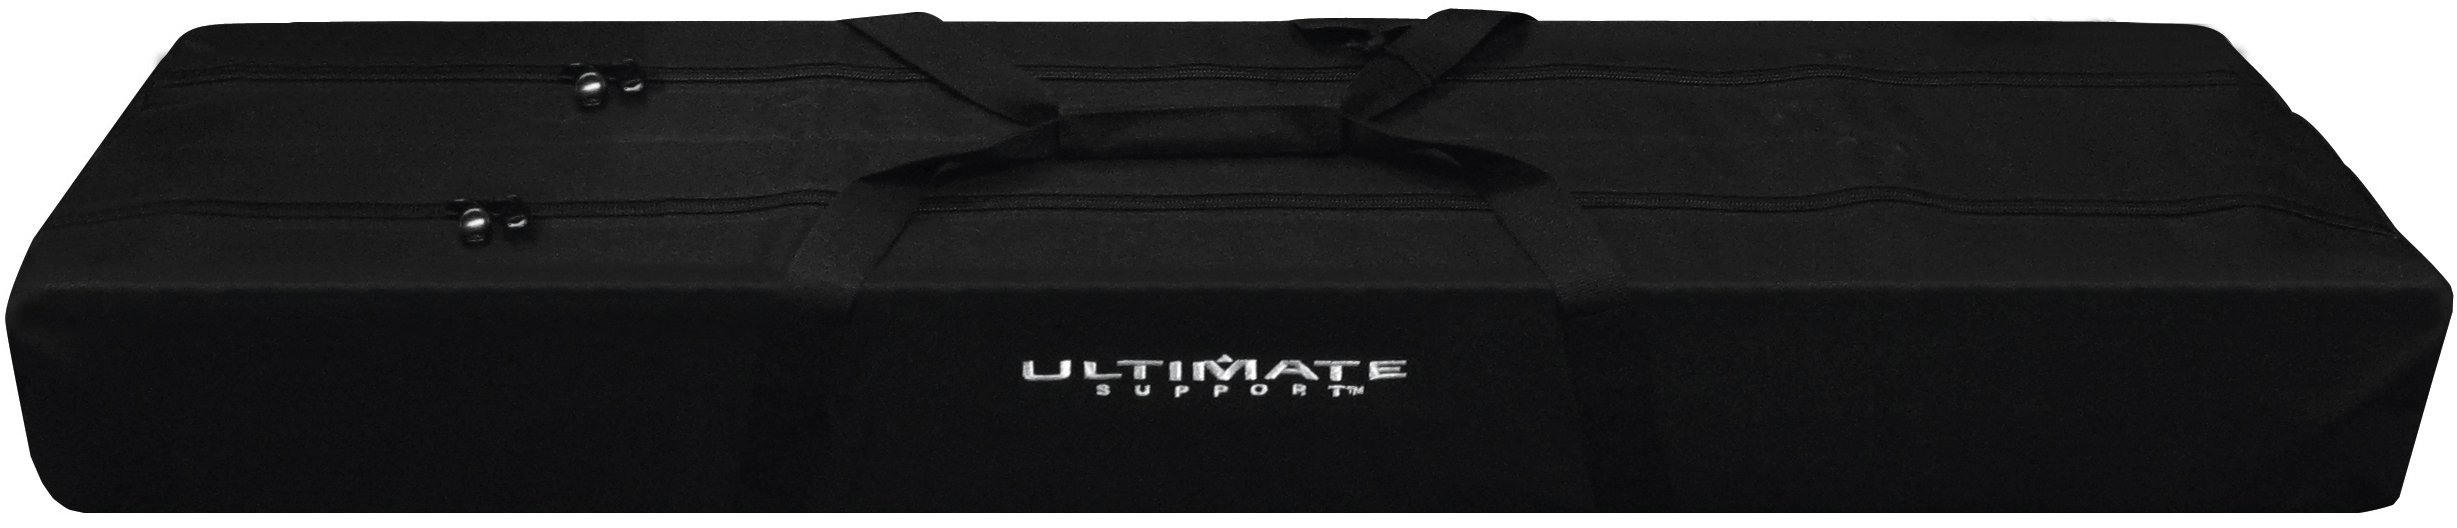 2x TS-90 TeleLock Speaker Stand with Padded Dual Tripod Tote Bag by FP Logistics, Ultimate Support (Image #6)